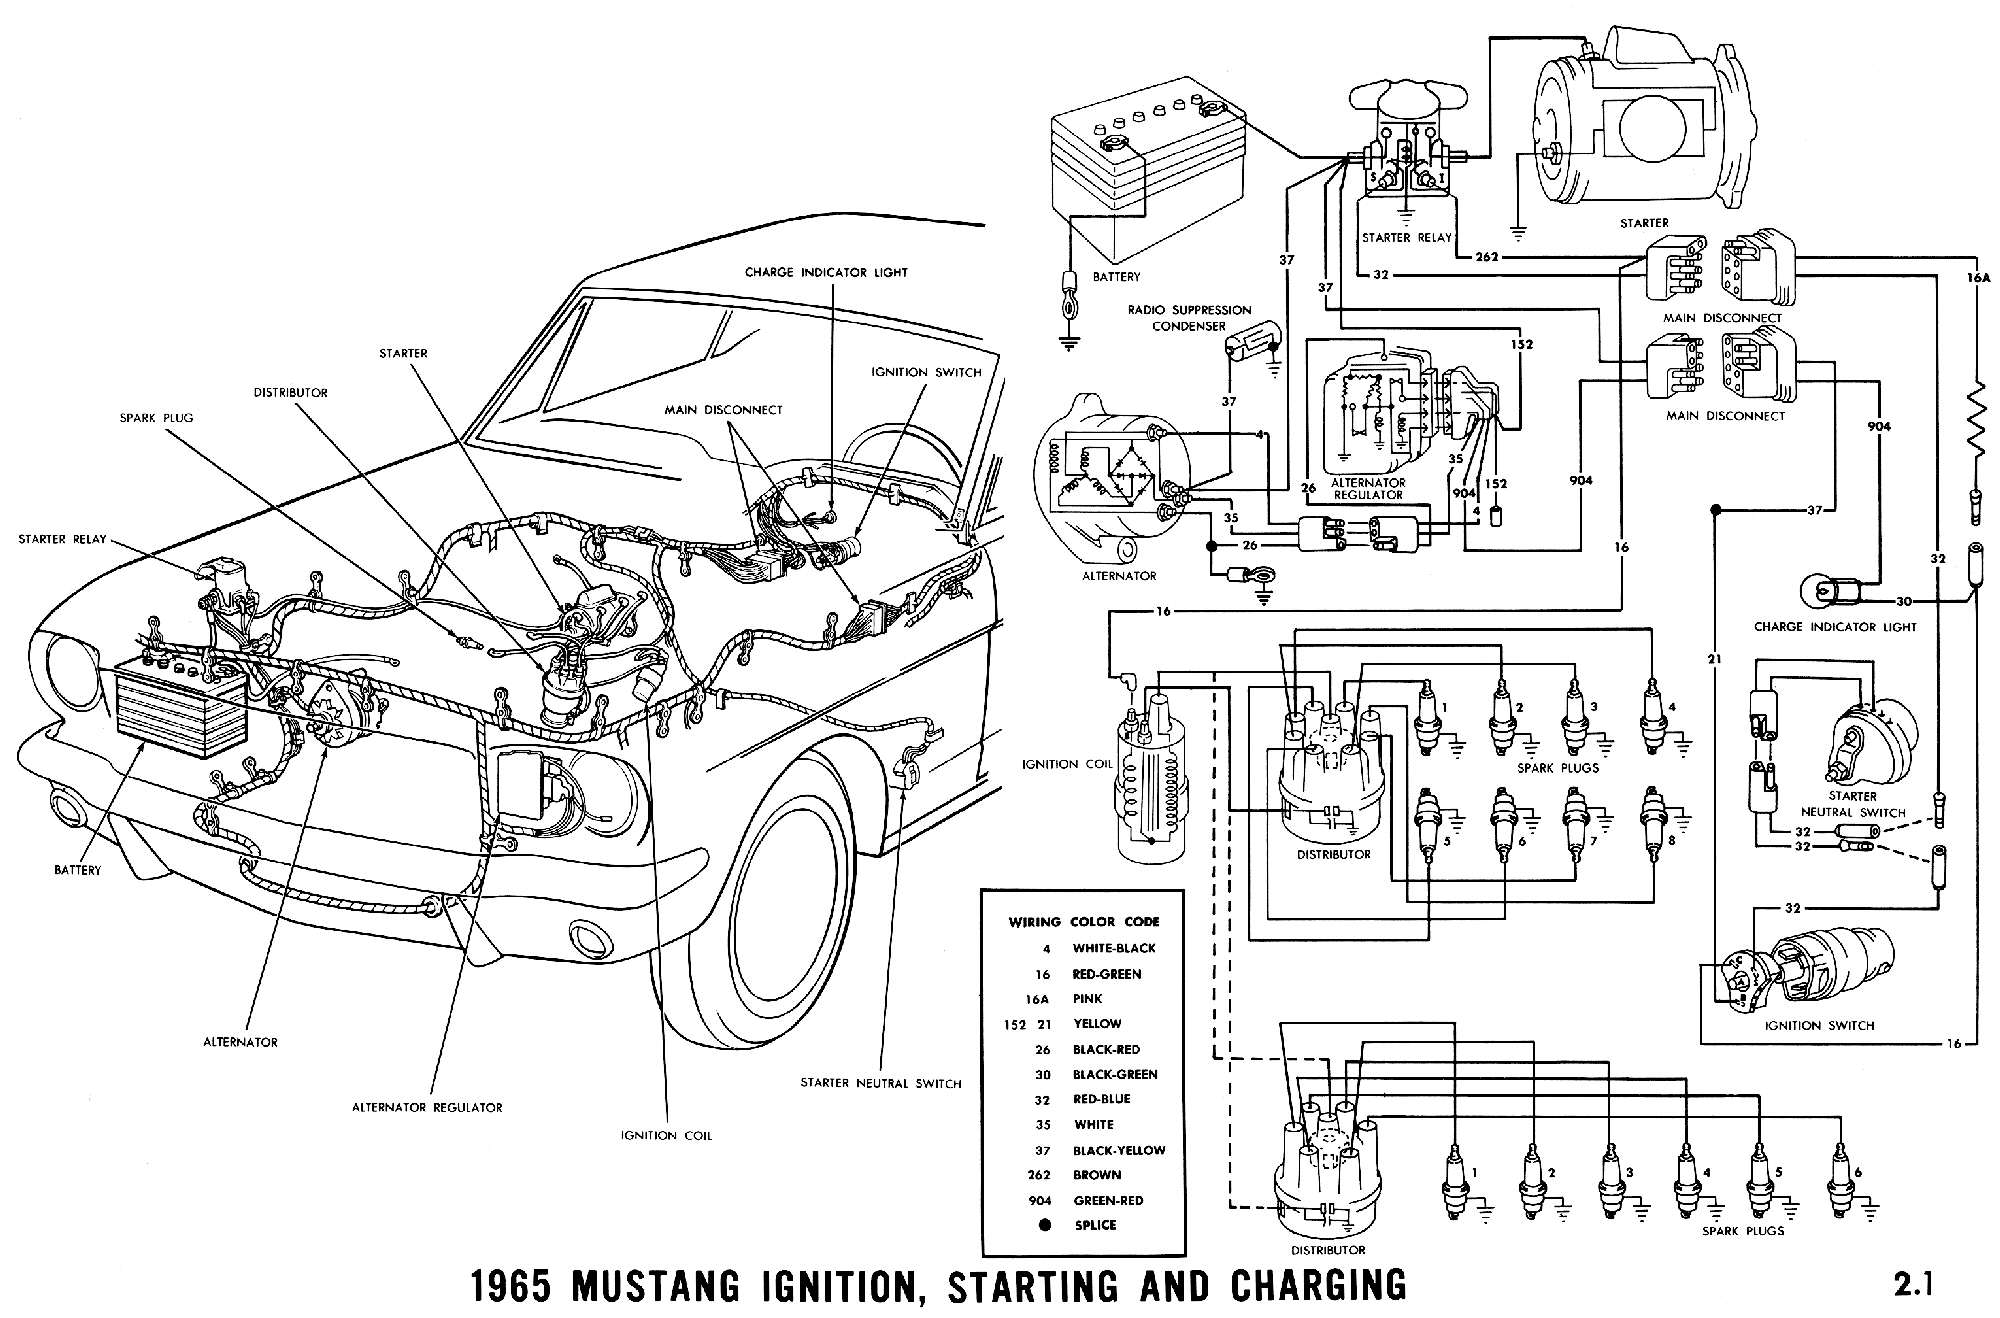 ford starter parts diagram nuwk carter co uk \u20221965 ford mustang starter wiring diagram online wiring diagram rh 16 code3e co 2000 expedition starter connections diagram ford starter breakdown diagram